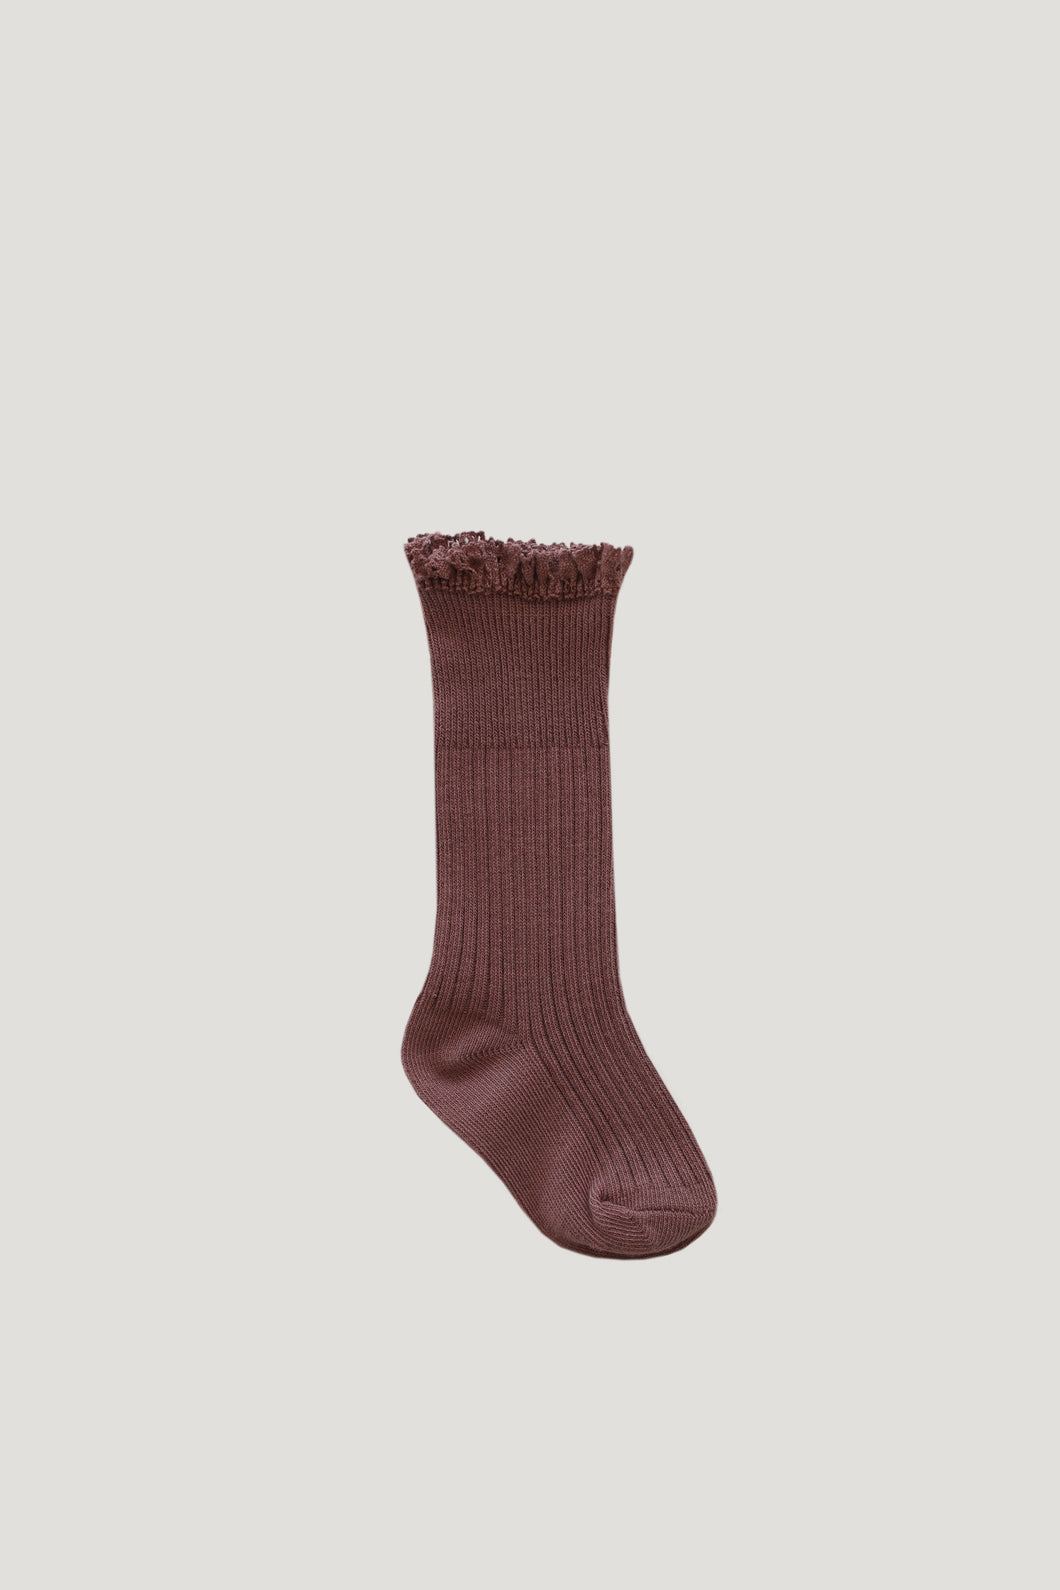 Frill Socks | Antique Rose. Jamie Kay Australian stockist. Afterpay available.